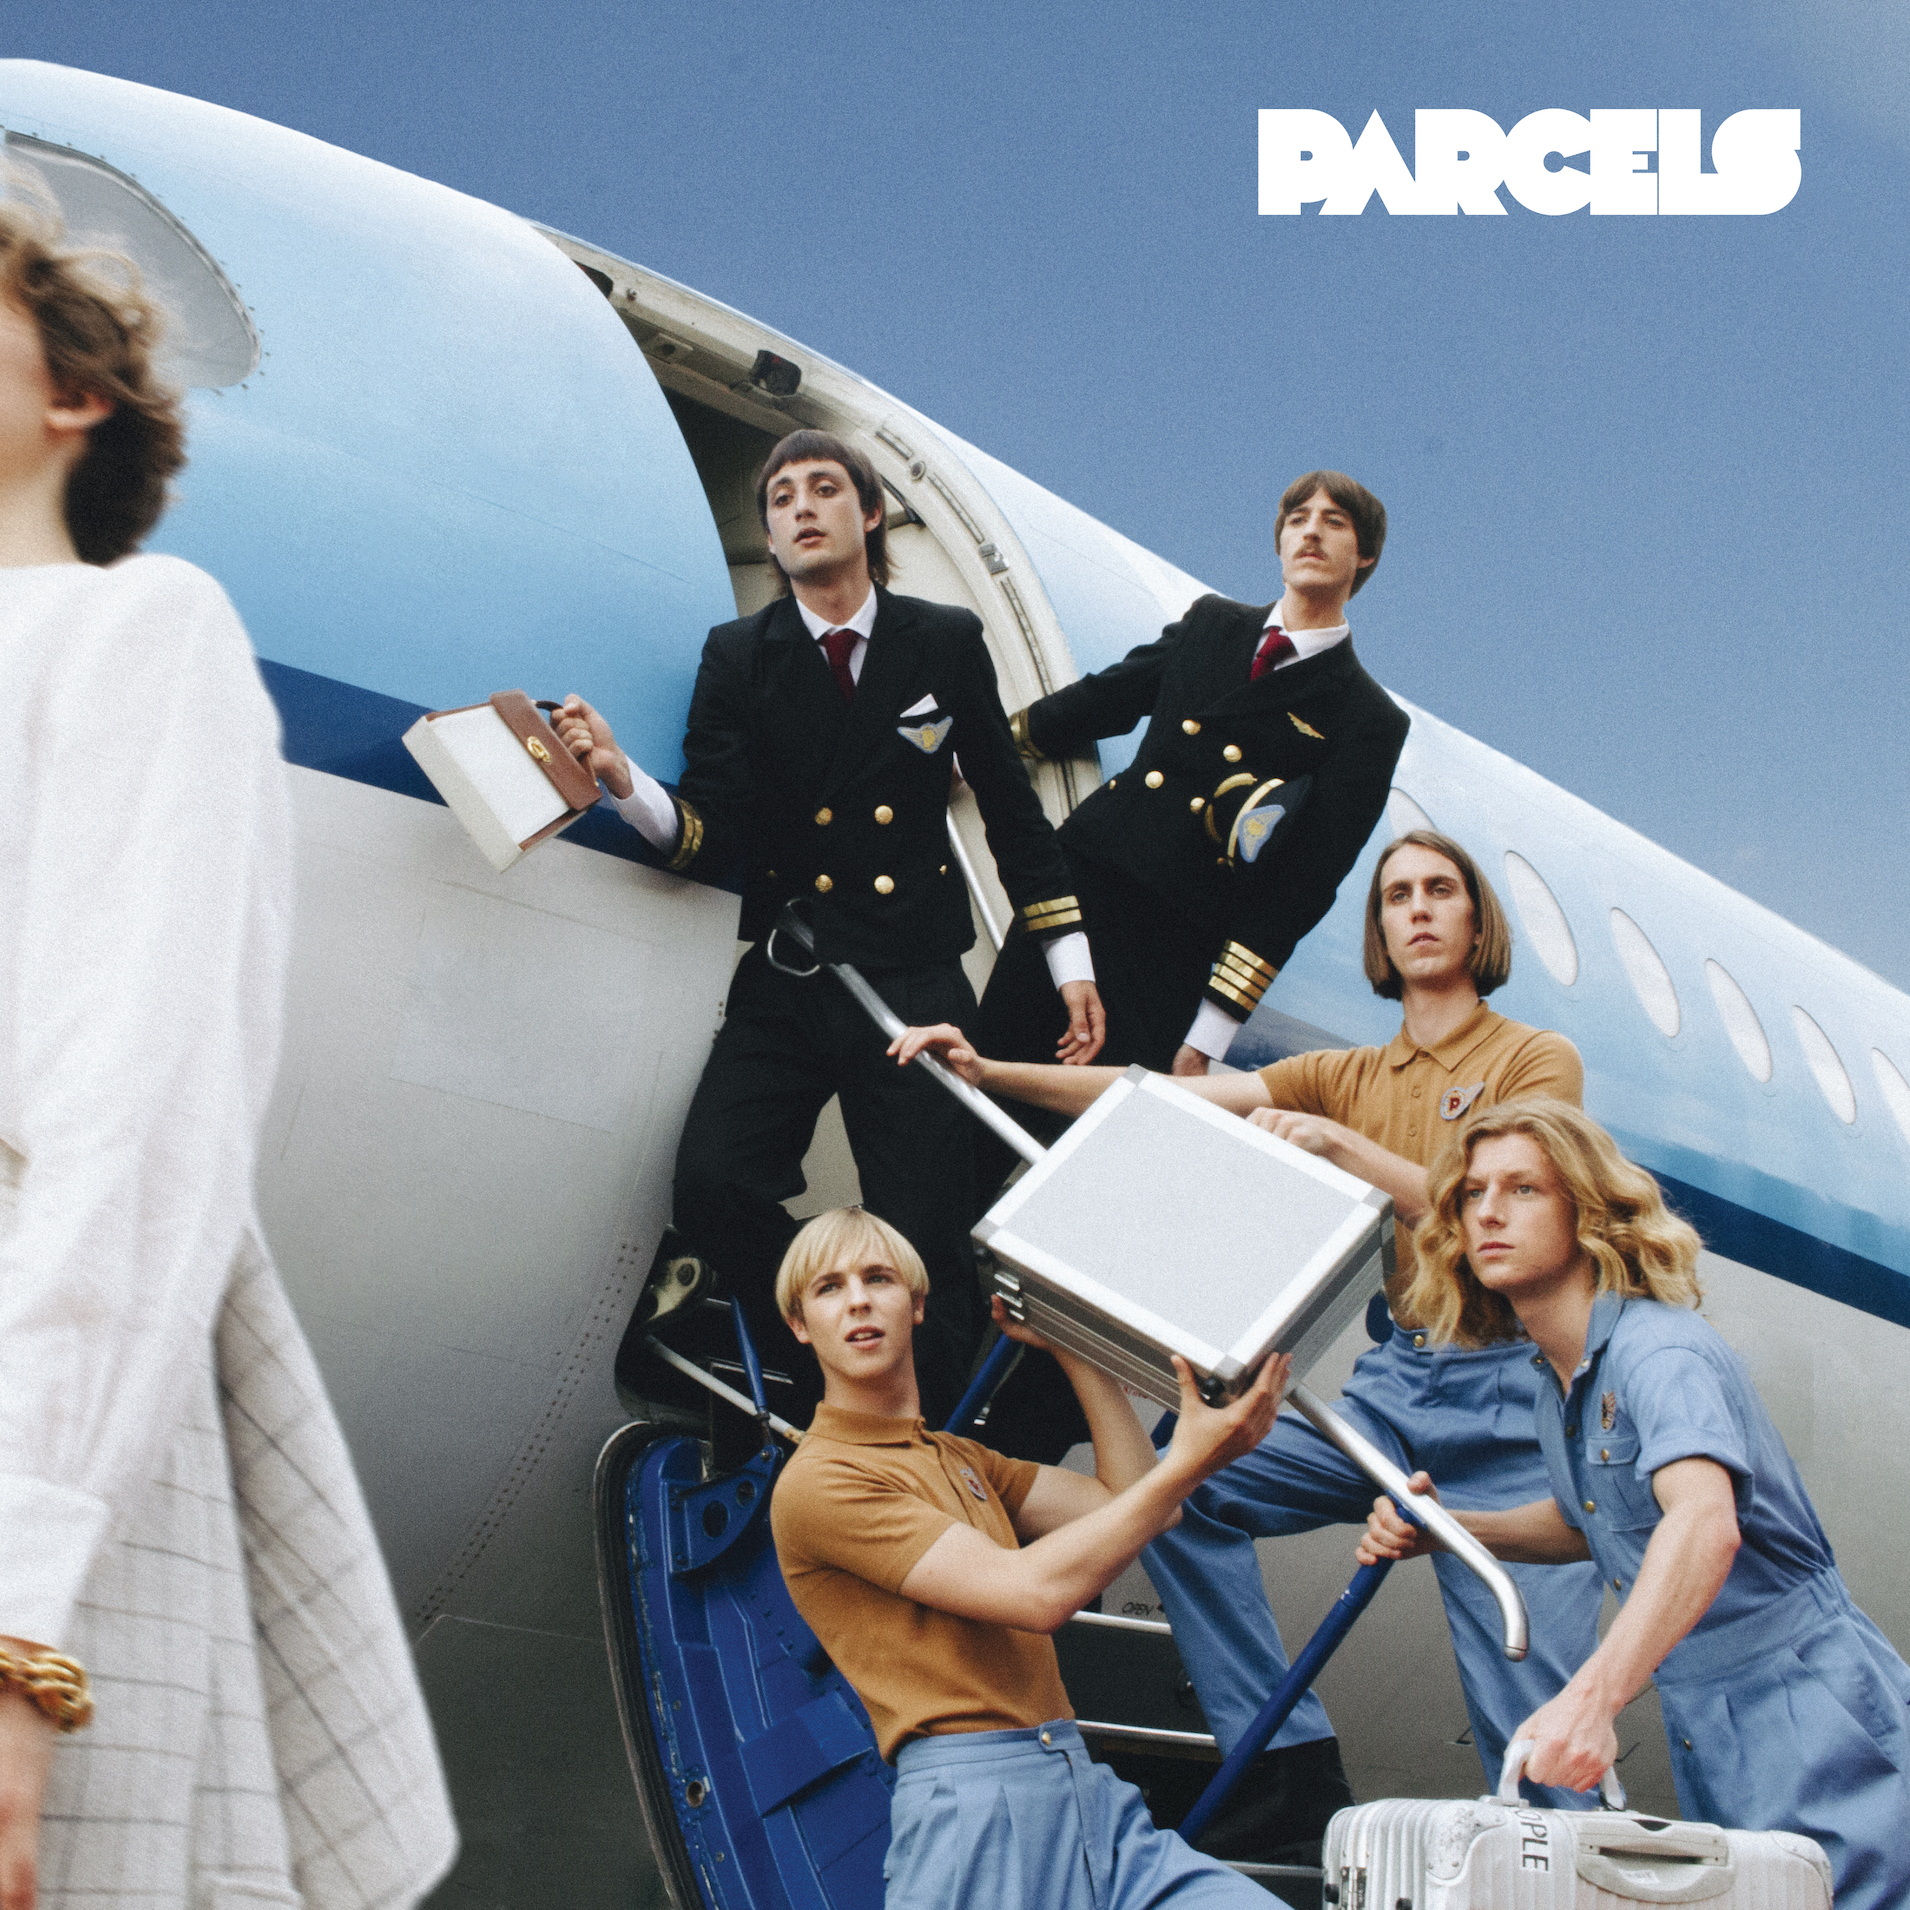 Parcels - ParcelsOctober 12th#32This one got a LOT of play and brought boundless joy to our house. Listen to this one as you ride your bike through the city. Just please use a speaker (not earbuds) so you can share the Parcels love and be safe as you cruise past the rest of this city. Parcels is playing March 1 at Lincoln Hall. Tix are $15. ($17 door)-LPL